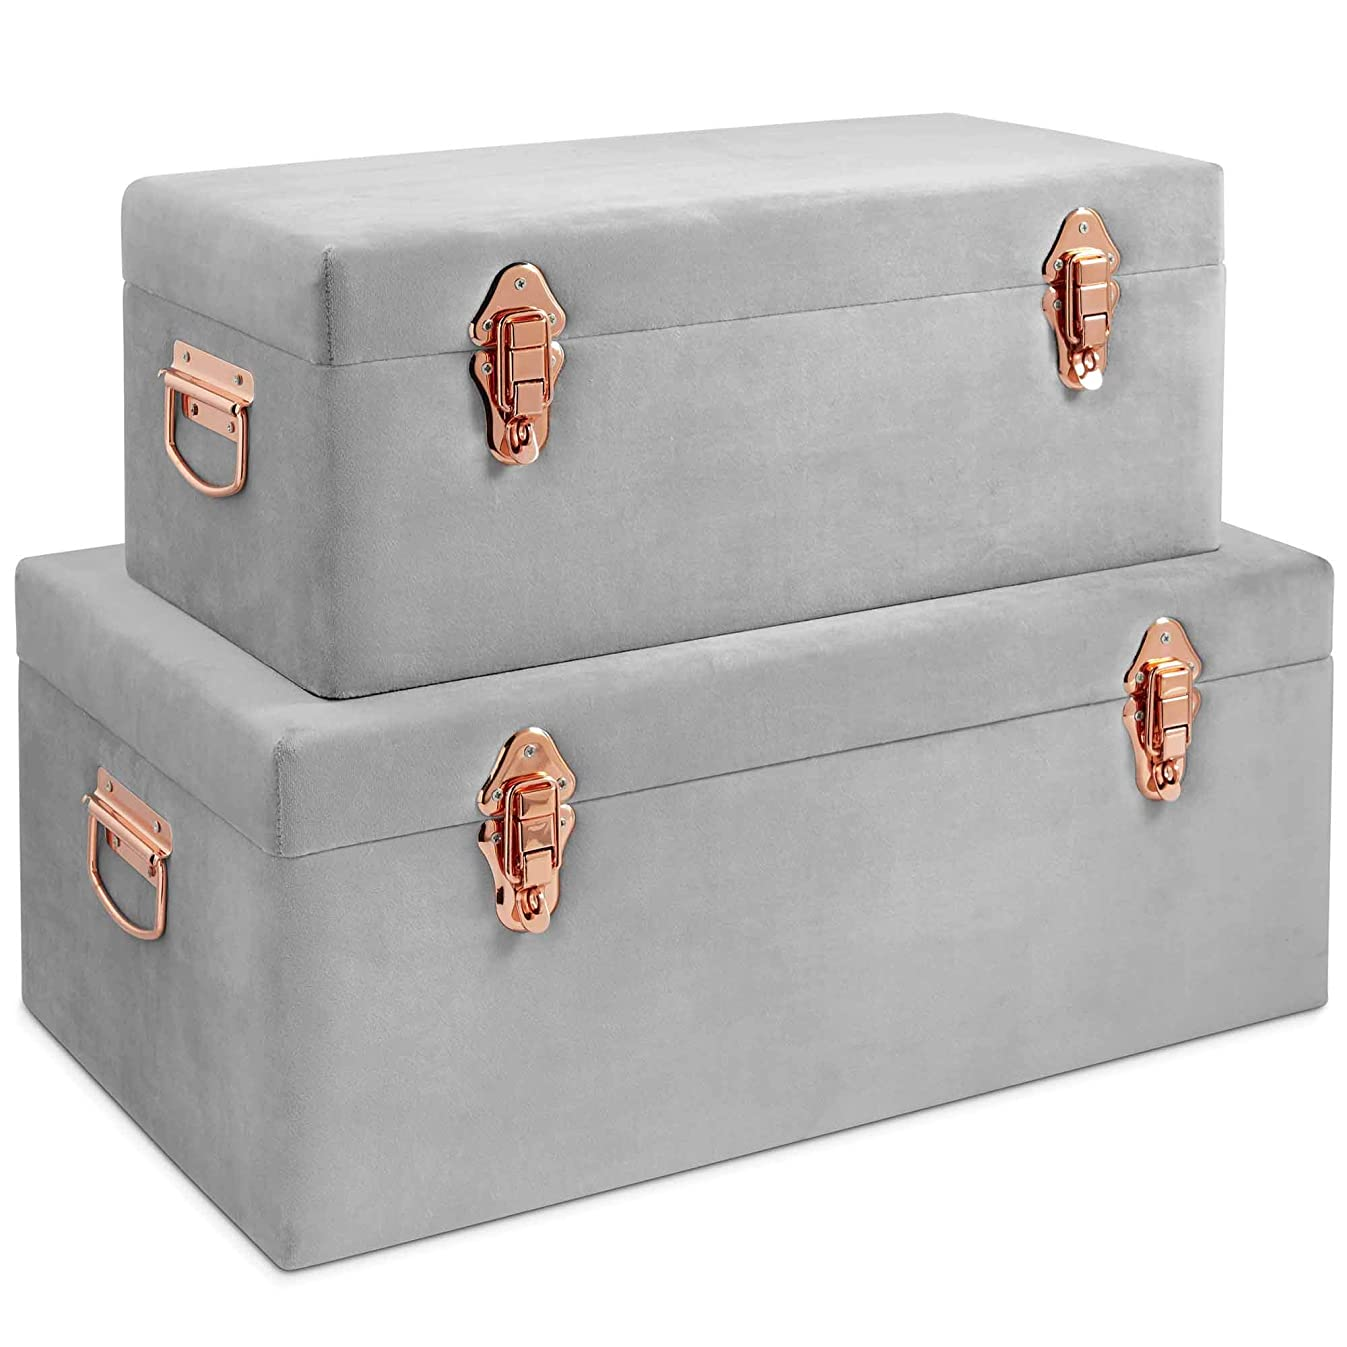 Beautify Gray Velvet Decorative Storage Trunk Set with Rose Gold Clasps - College Dorm and Bedroom Footlocker Trunks